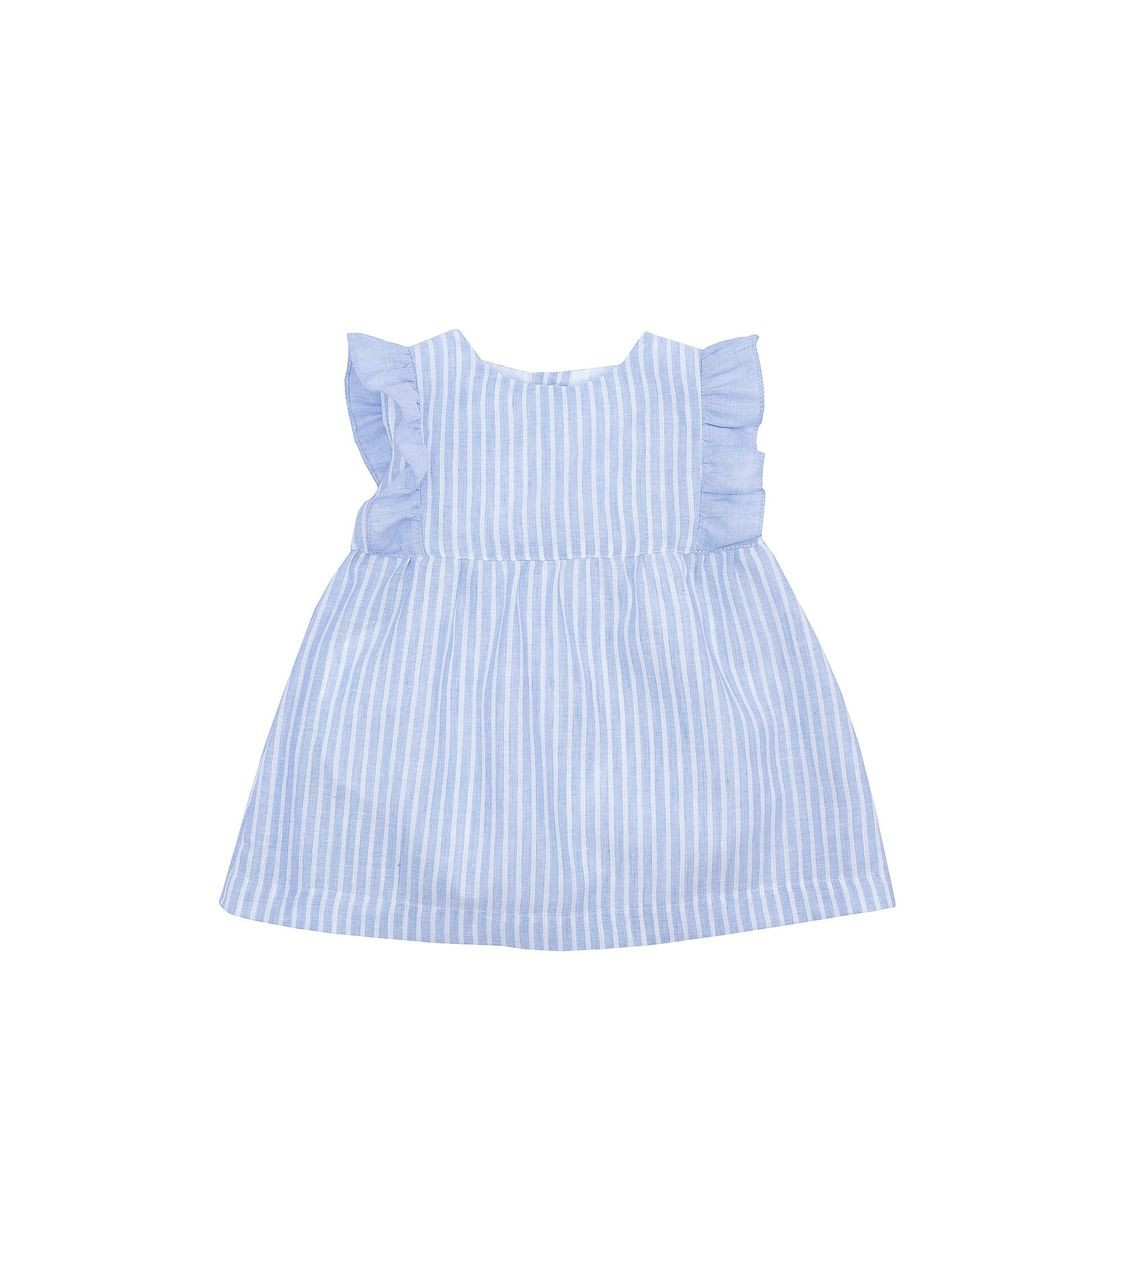 a82751e946 Girls Blue and White Dress - Coco Childrenswear